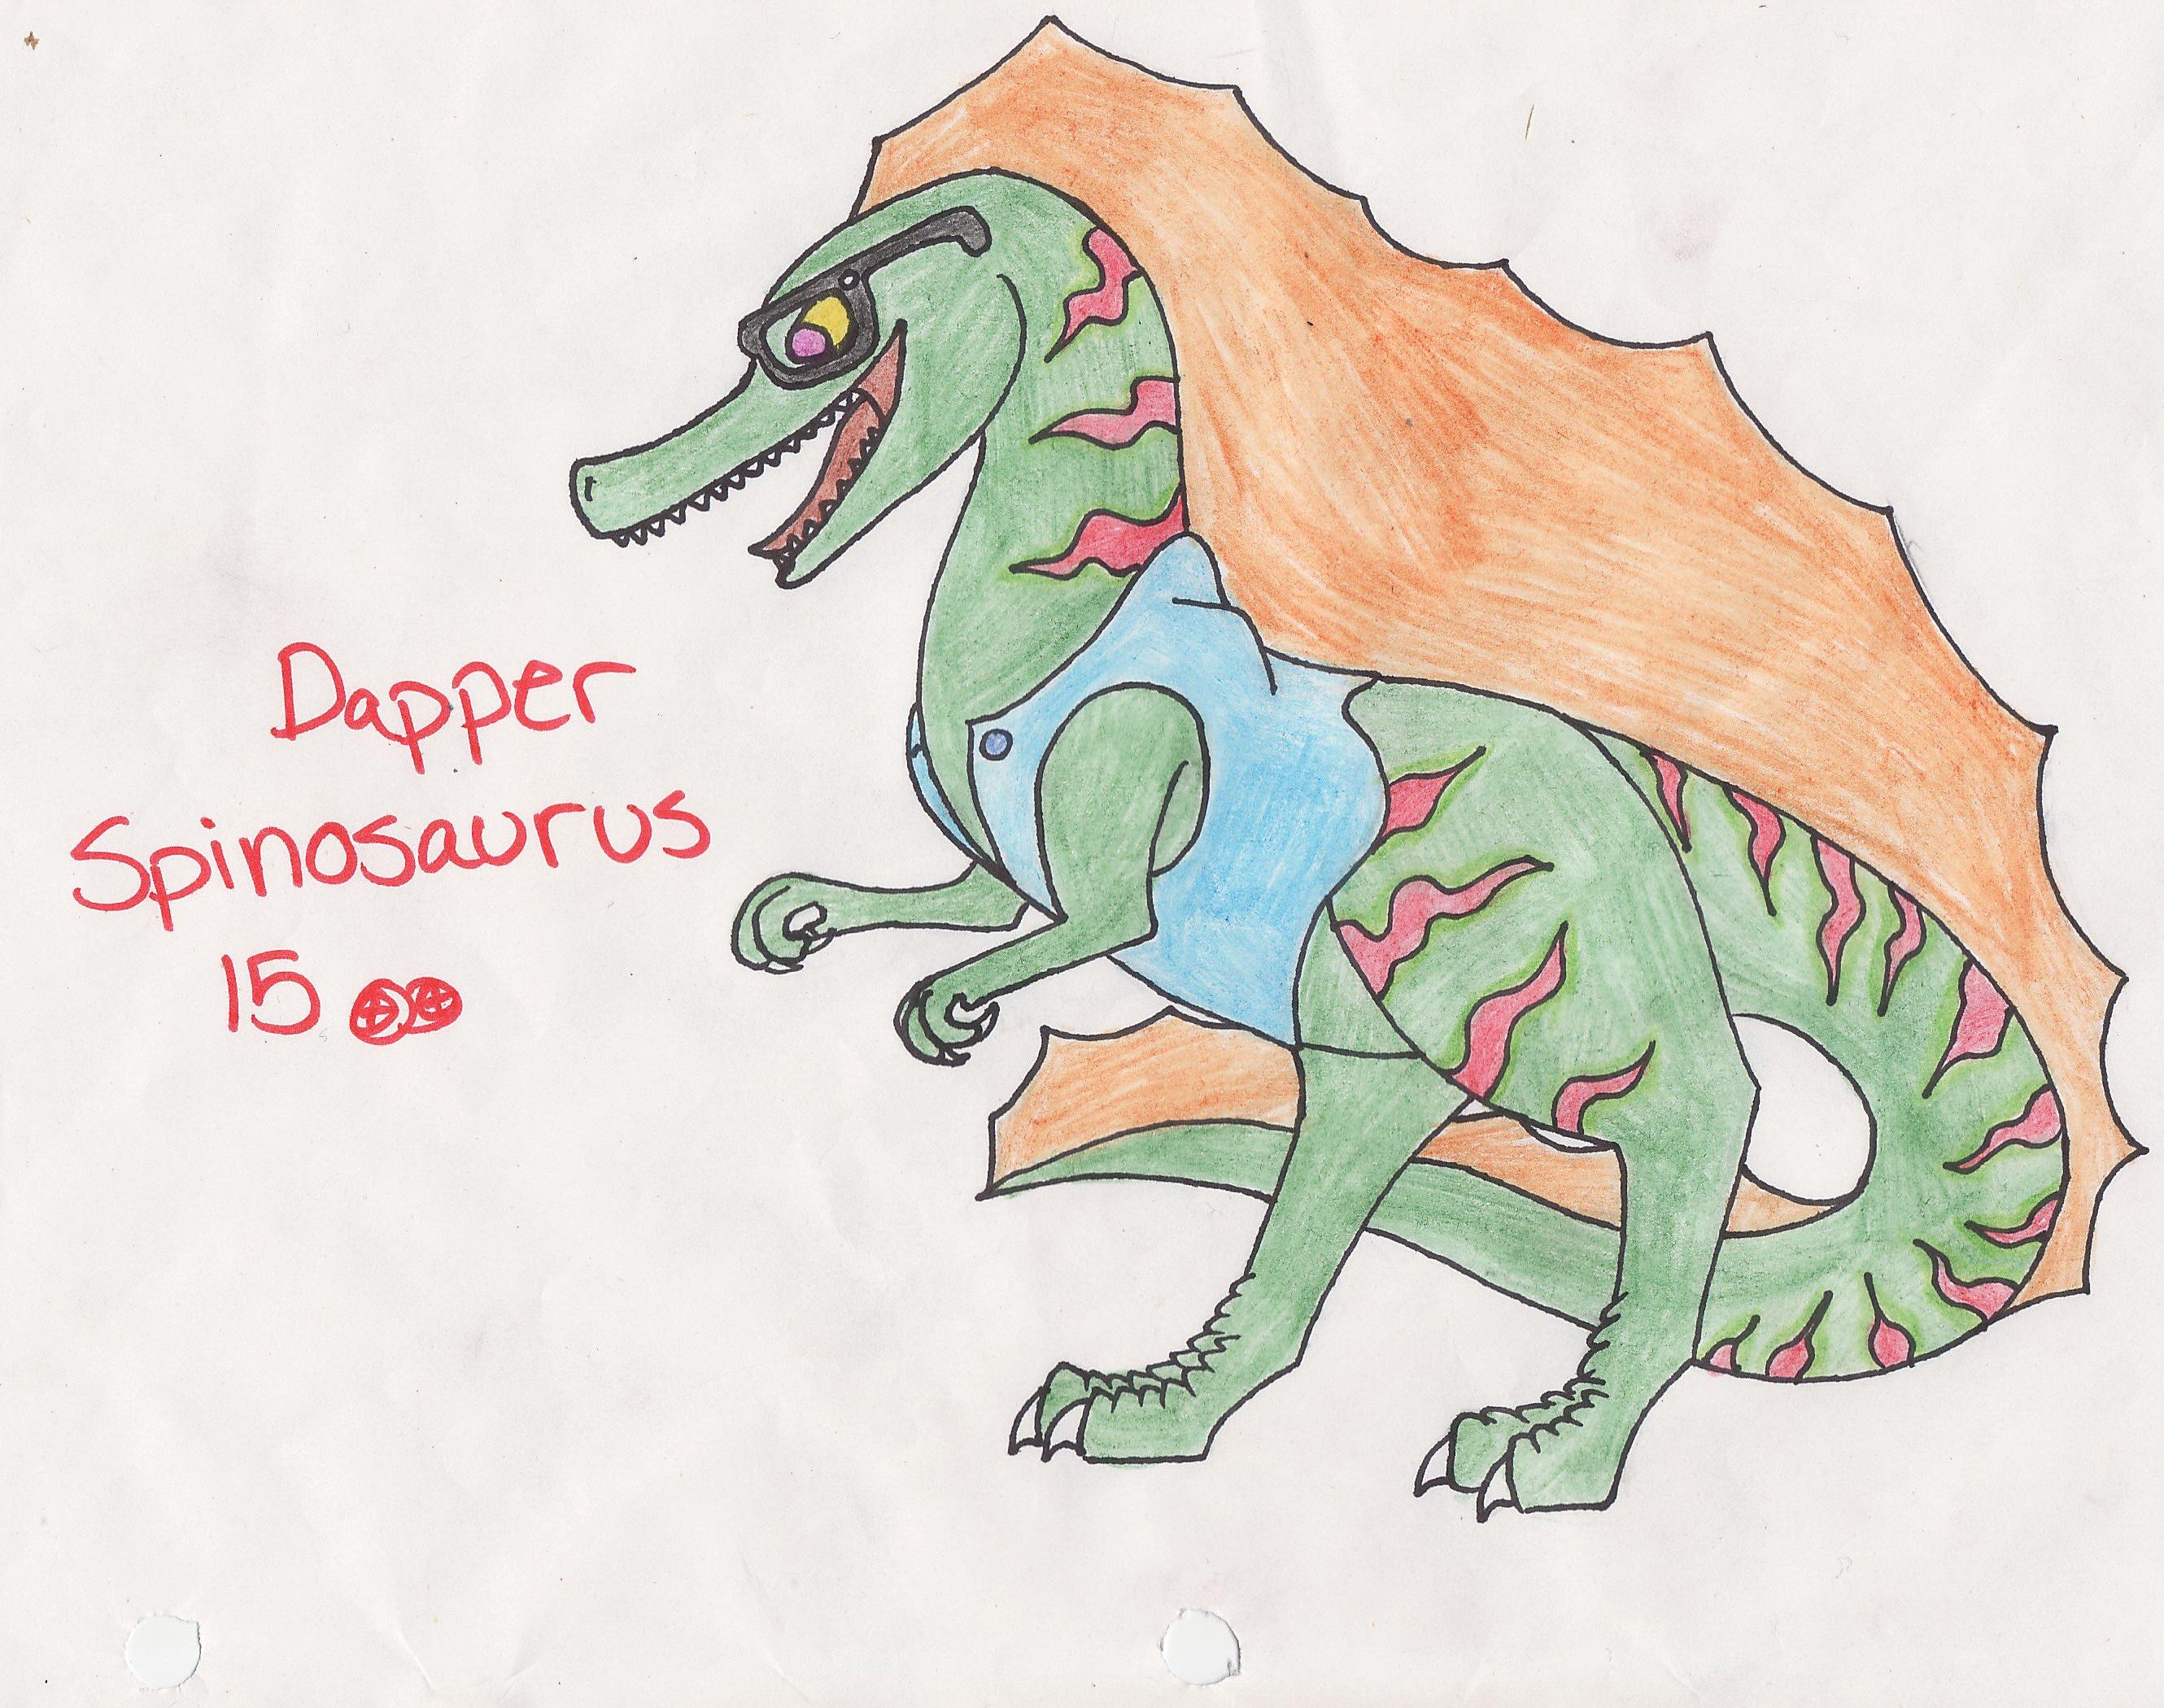 Dapper Spinosaurus Adoptable by Nightshadow-Horus